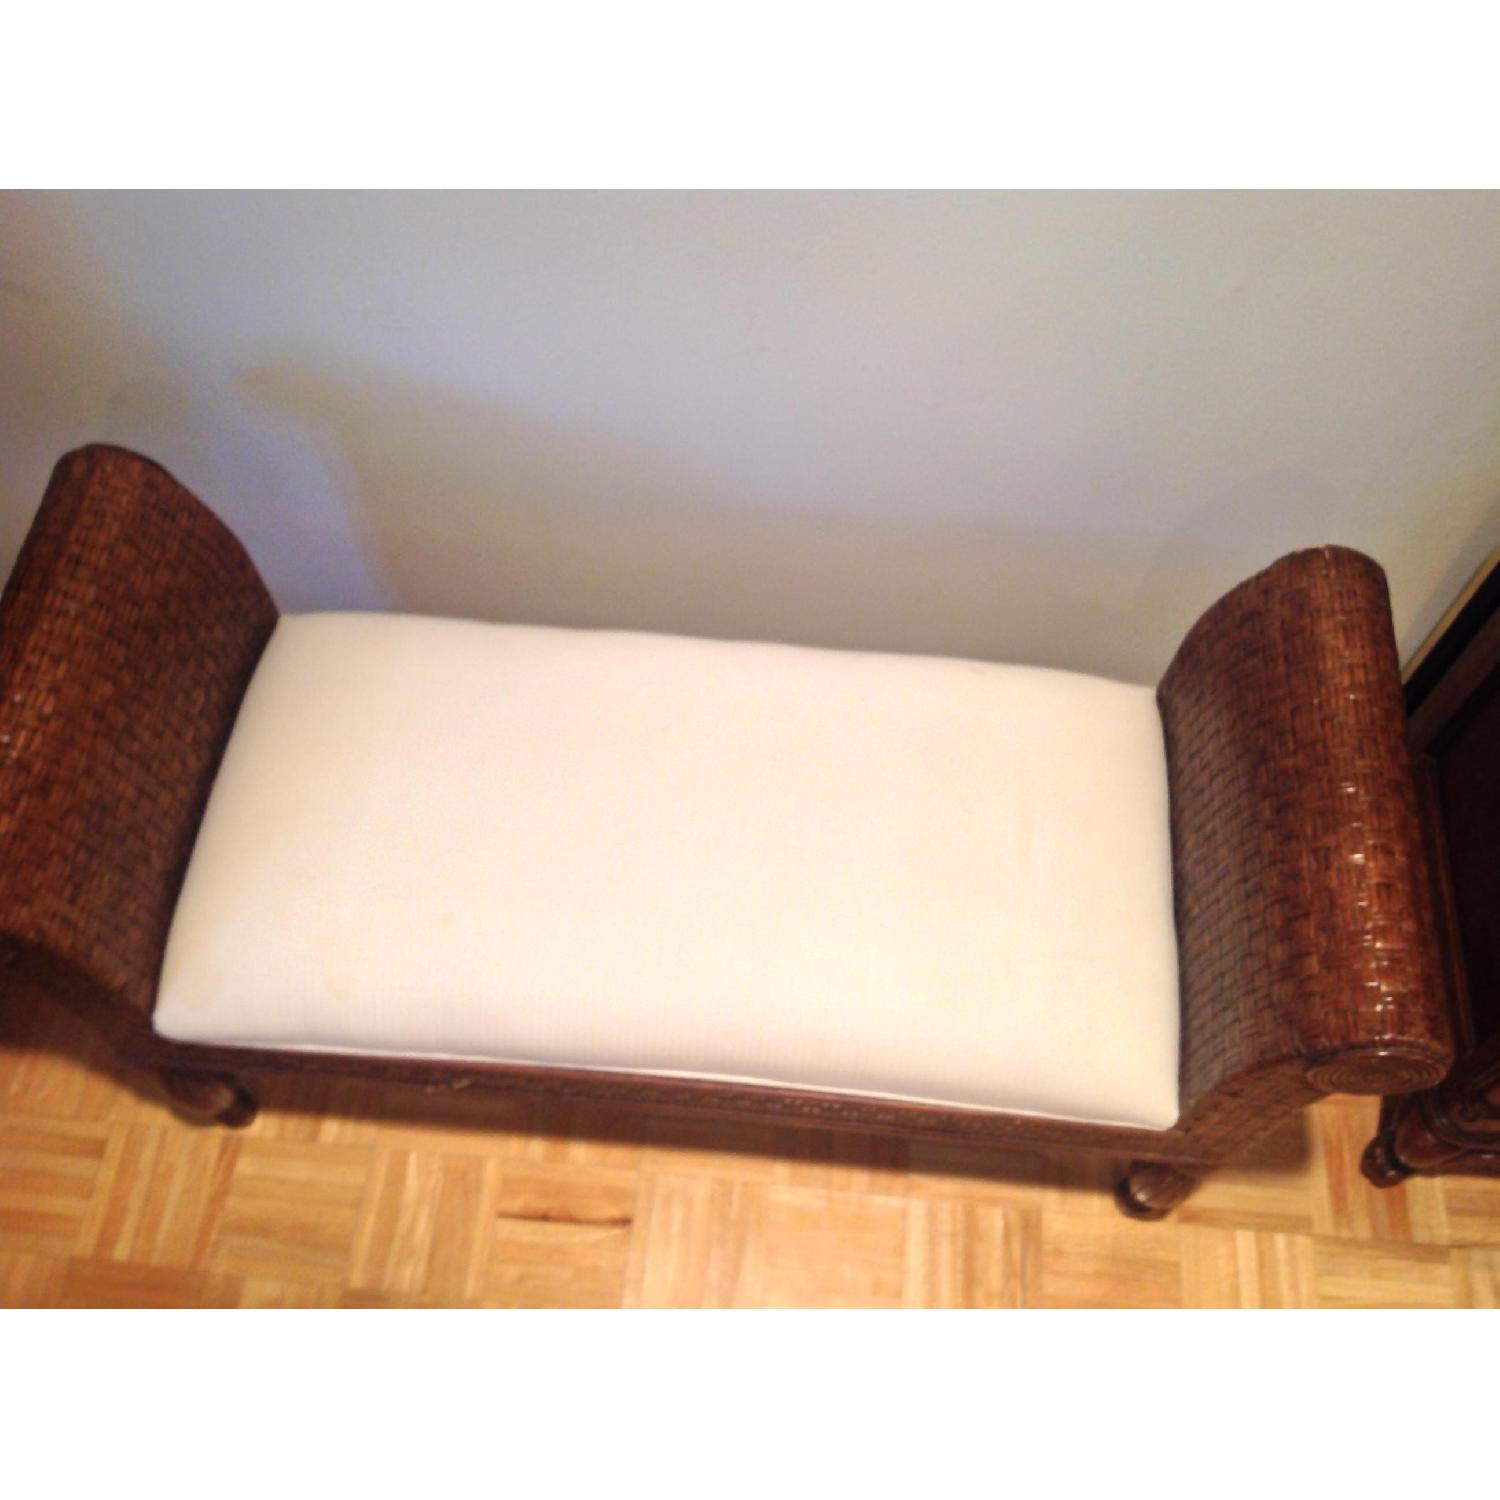 Ethan Allen Wicker Bench - image-3